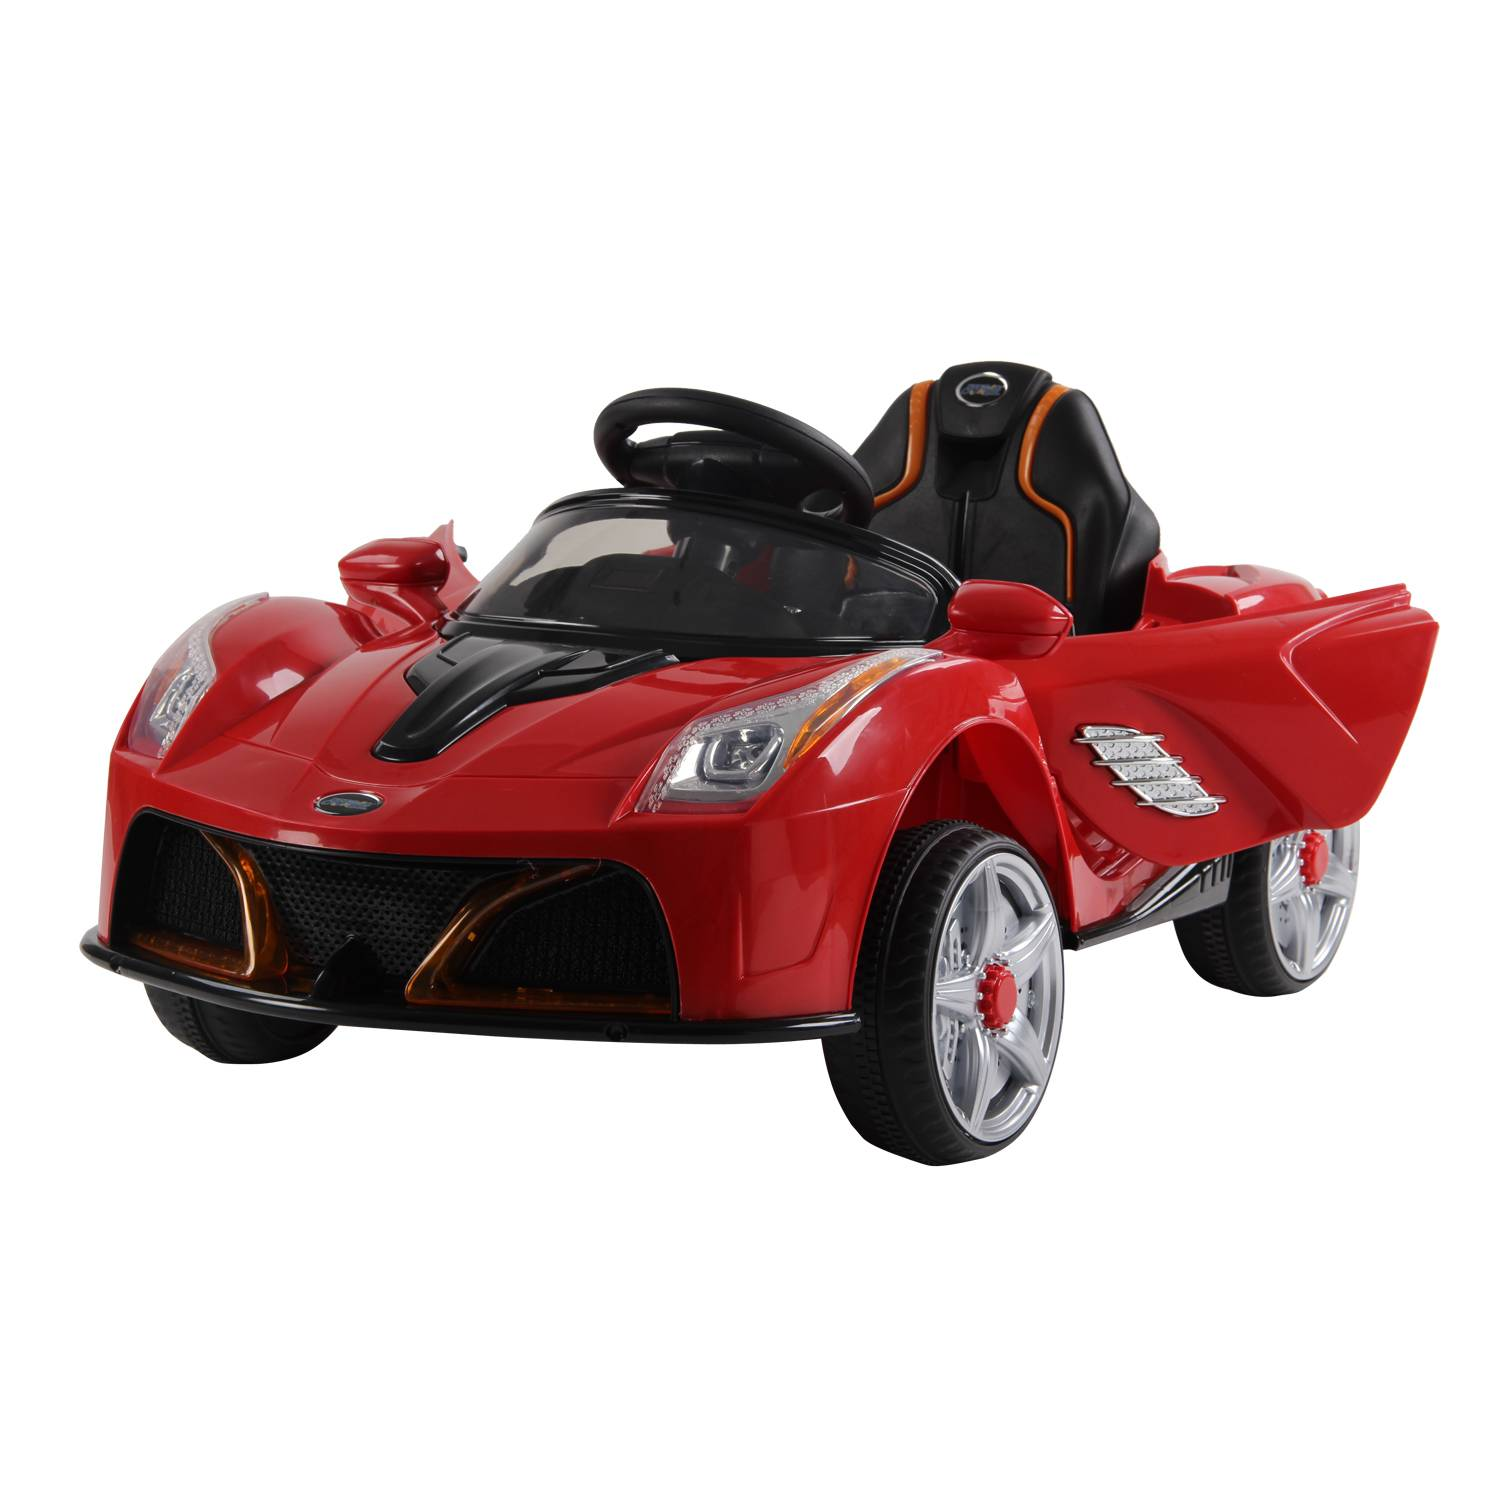 HOMCOM 6V Kids Electric Ride On Car Remote Control W / Music-Red